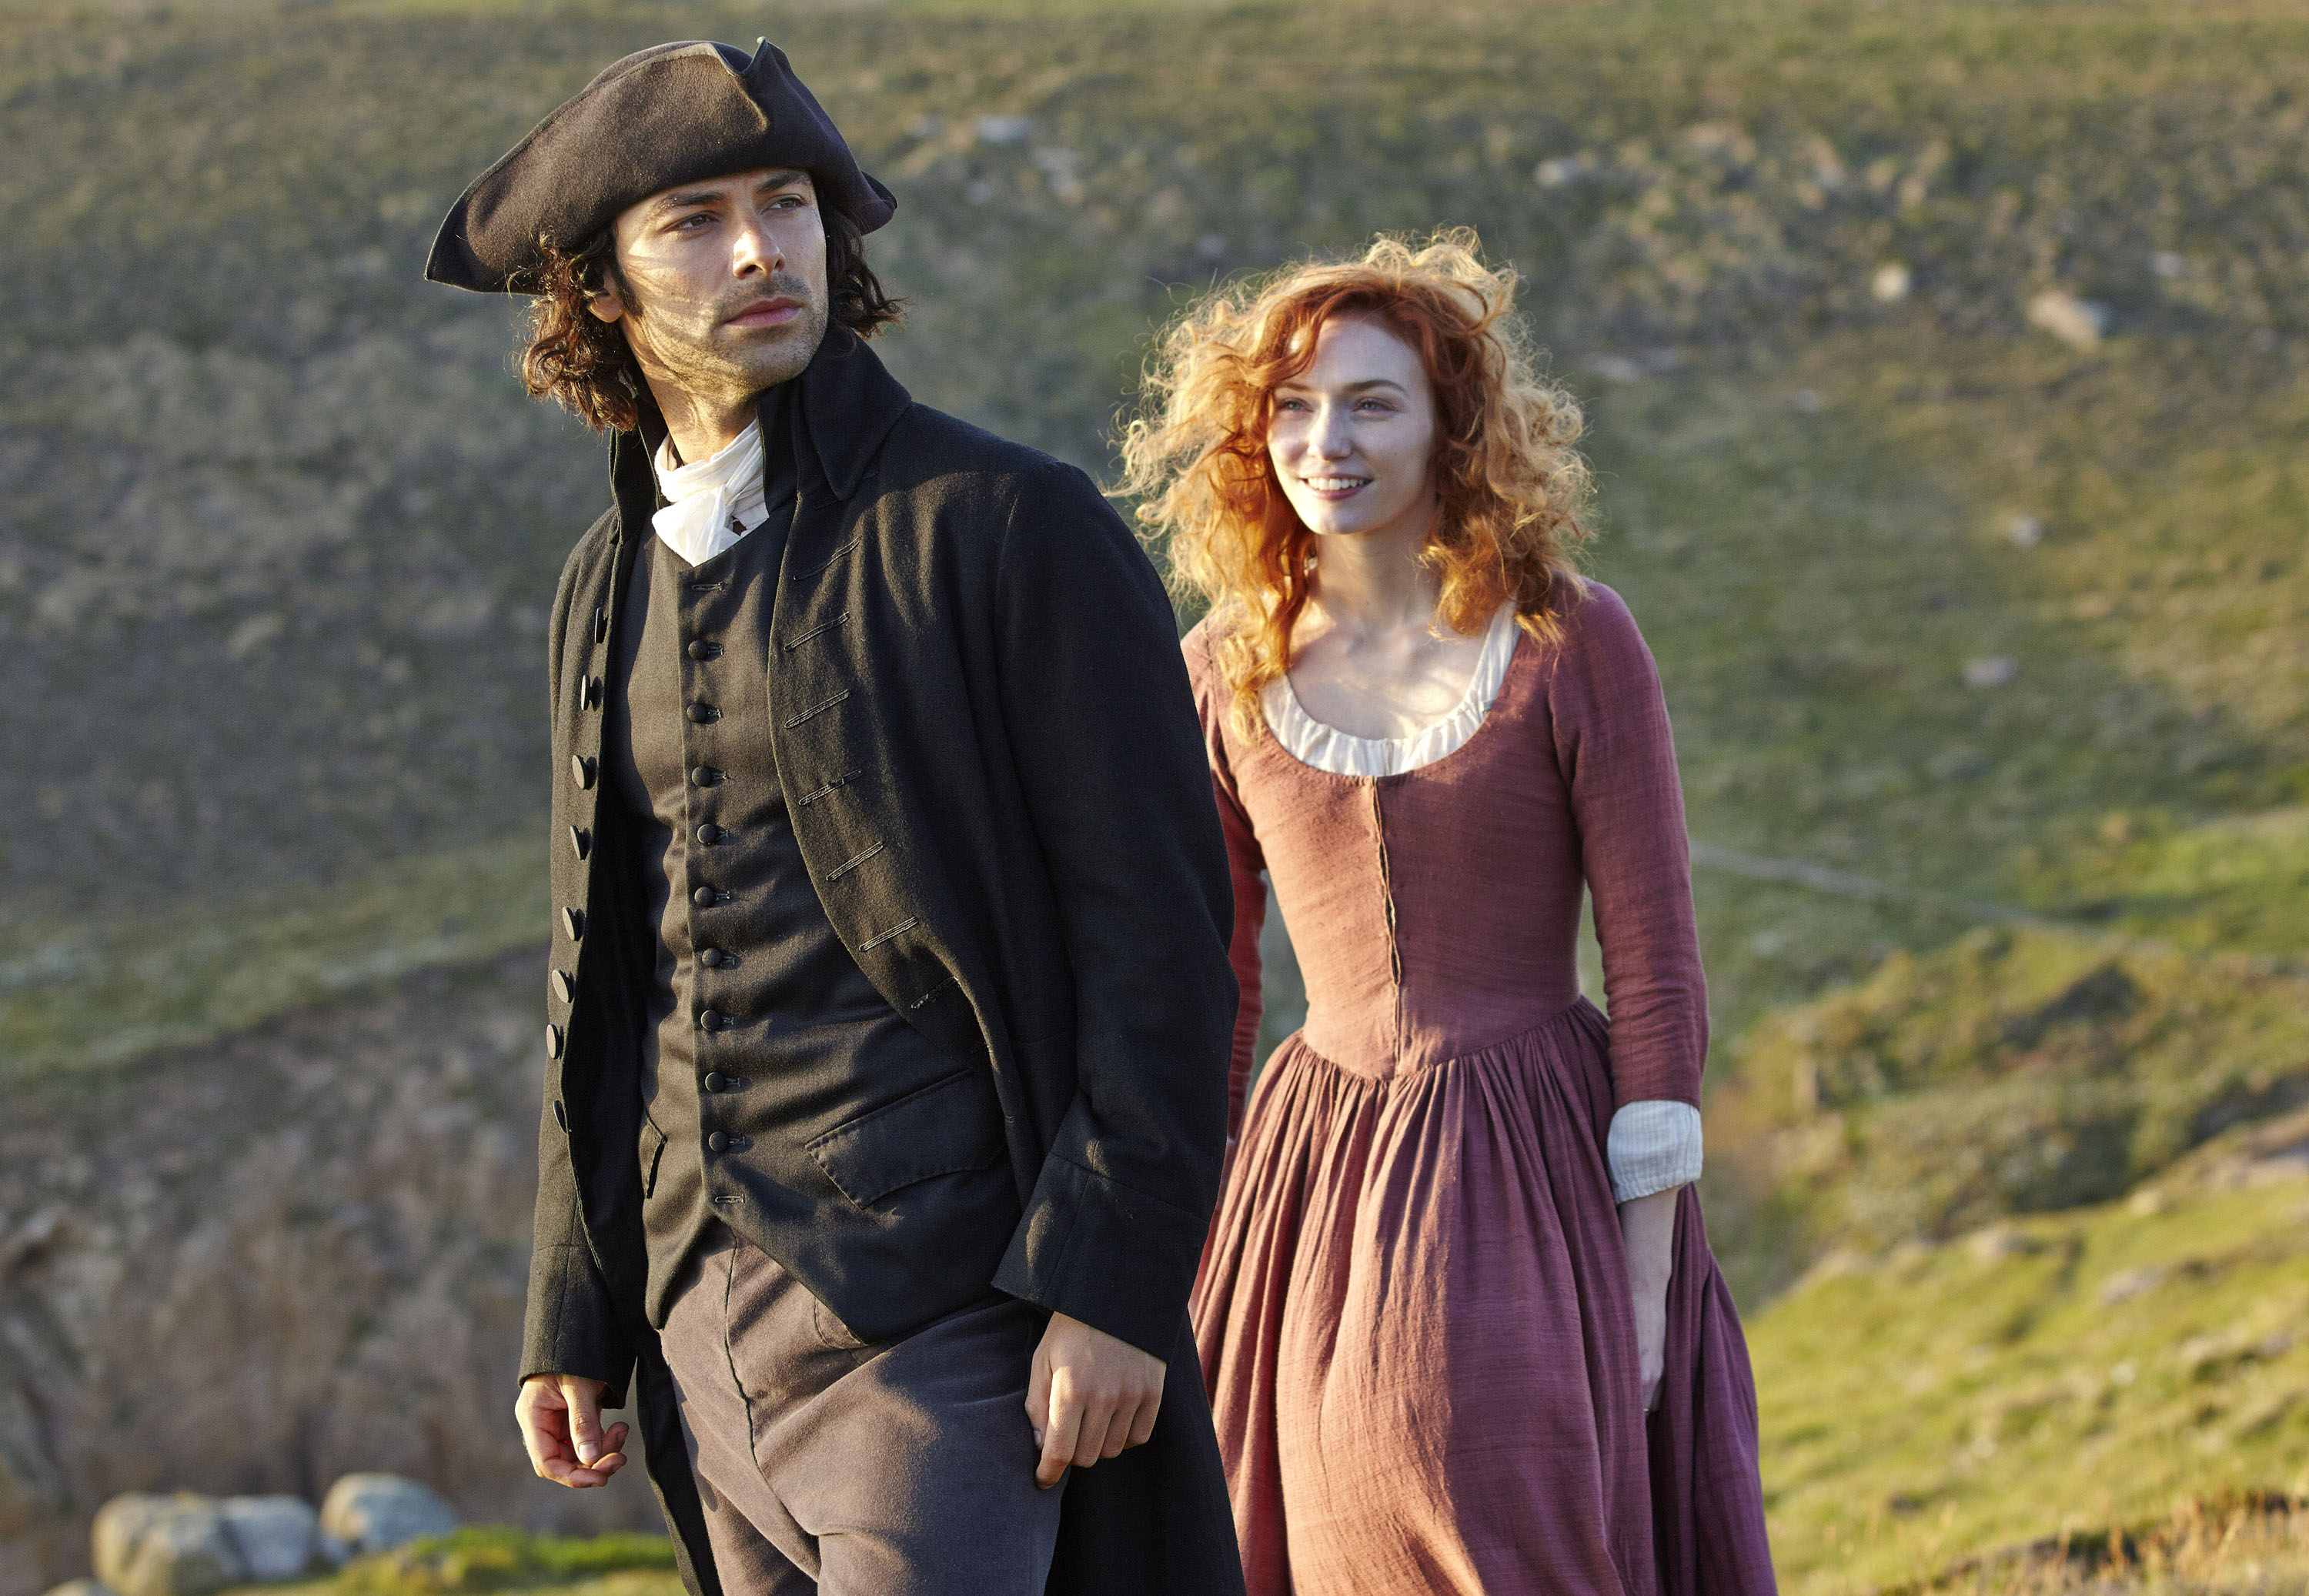 Poldark Sundays, June 21 - August 2, 2015 on MASTERPIECE on PBS Part Four Sunday, July 12, 9:00 - 10:00pm ET The community awaits news of the fish harvest. Poldark's copper mine struggles. Demelza must get used to a new way of life. Shown from left to right: Aidan Turner as Ross Poldark and Eleanor Tomlinson as Demelza (C) Robert Viglasky/Mammoth Screen for MASTERPIECE This image may be used only in the direct promotion of MASTERPIECE. No other rights are granted. All rights are reserved. Editorial use only